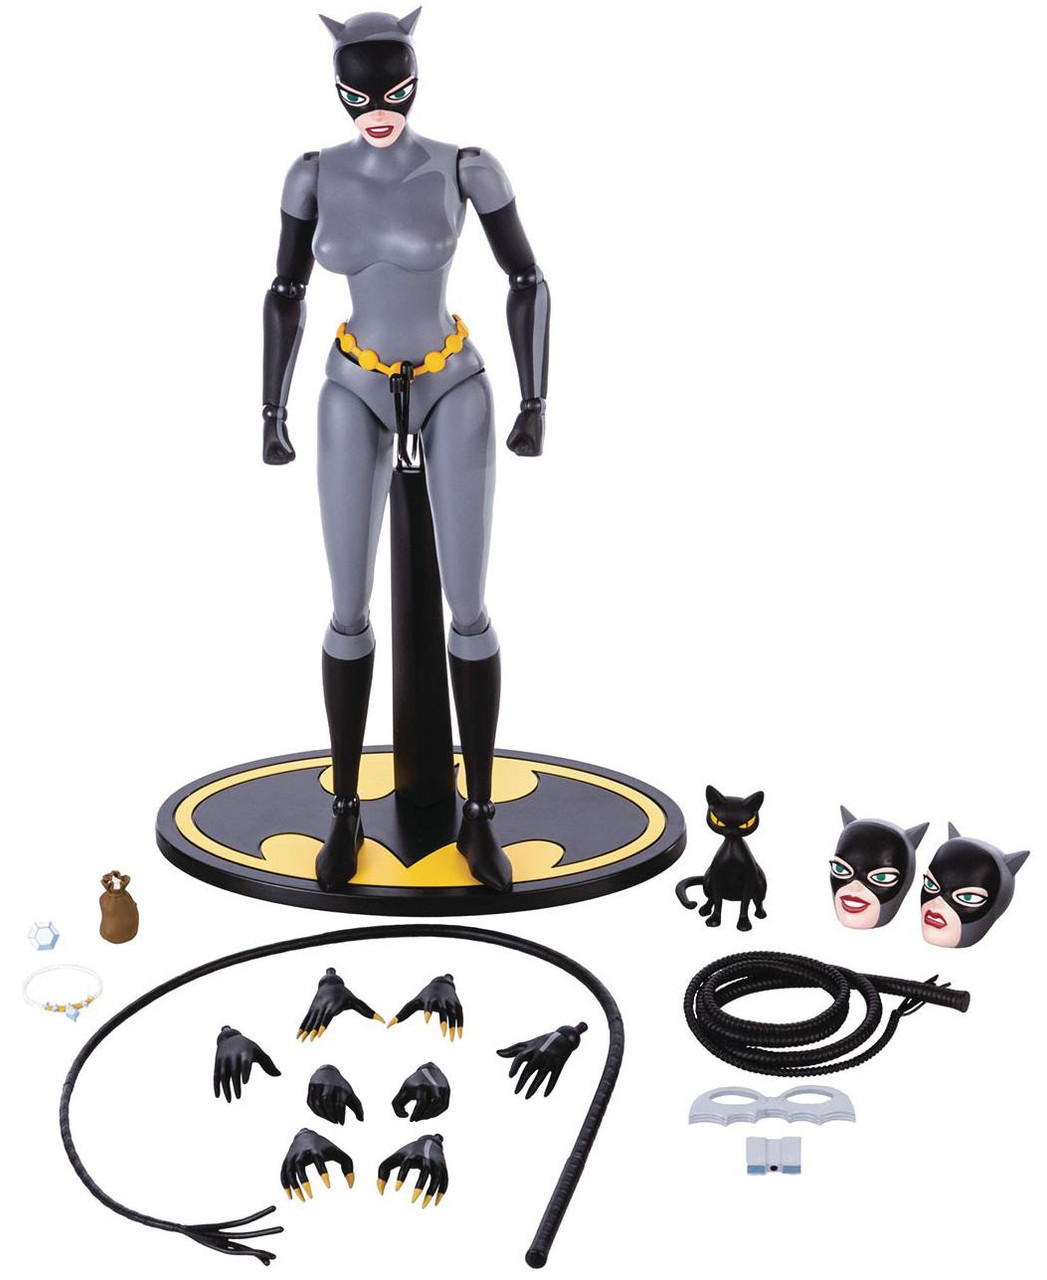 NBA Batman Animated Serie figurine CATWOMAN DC Collectibles